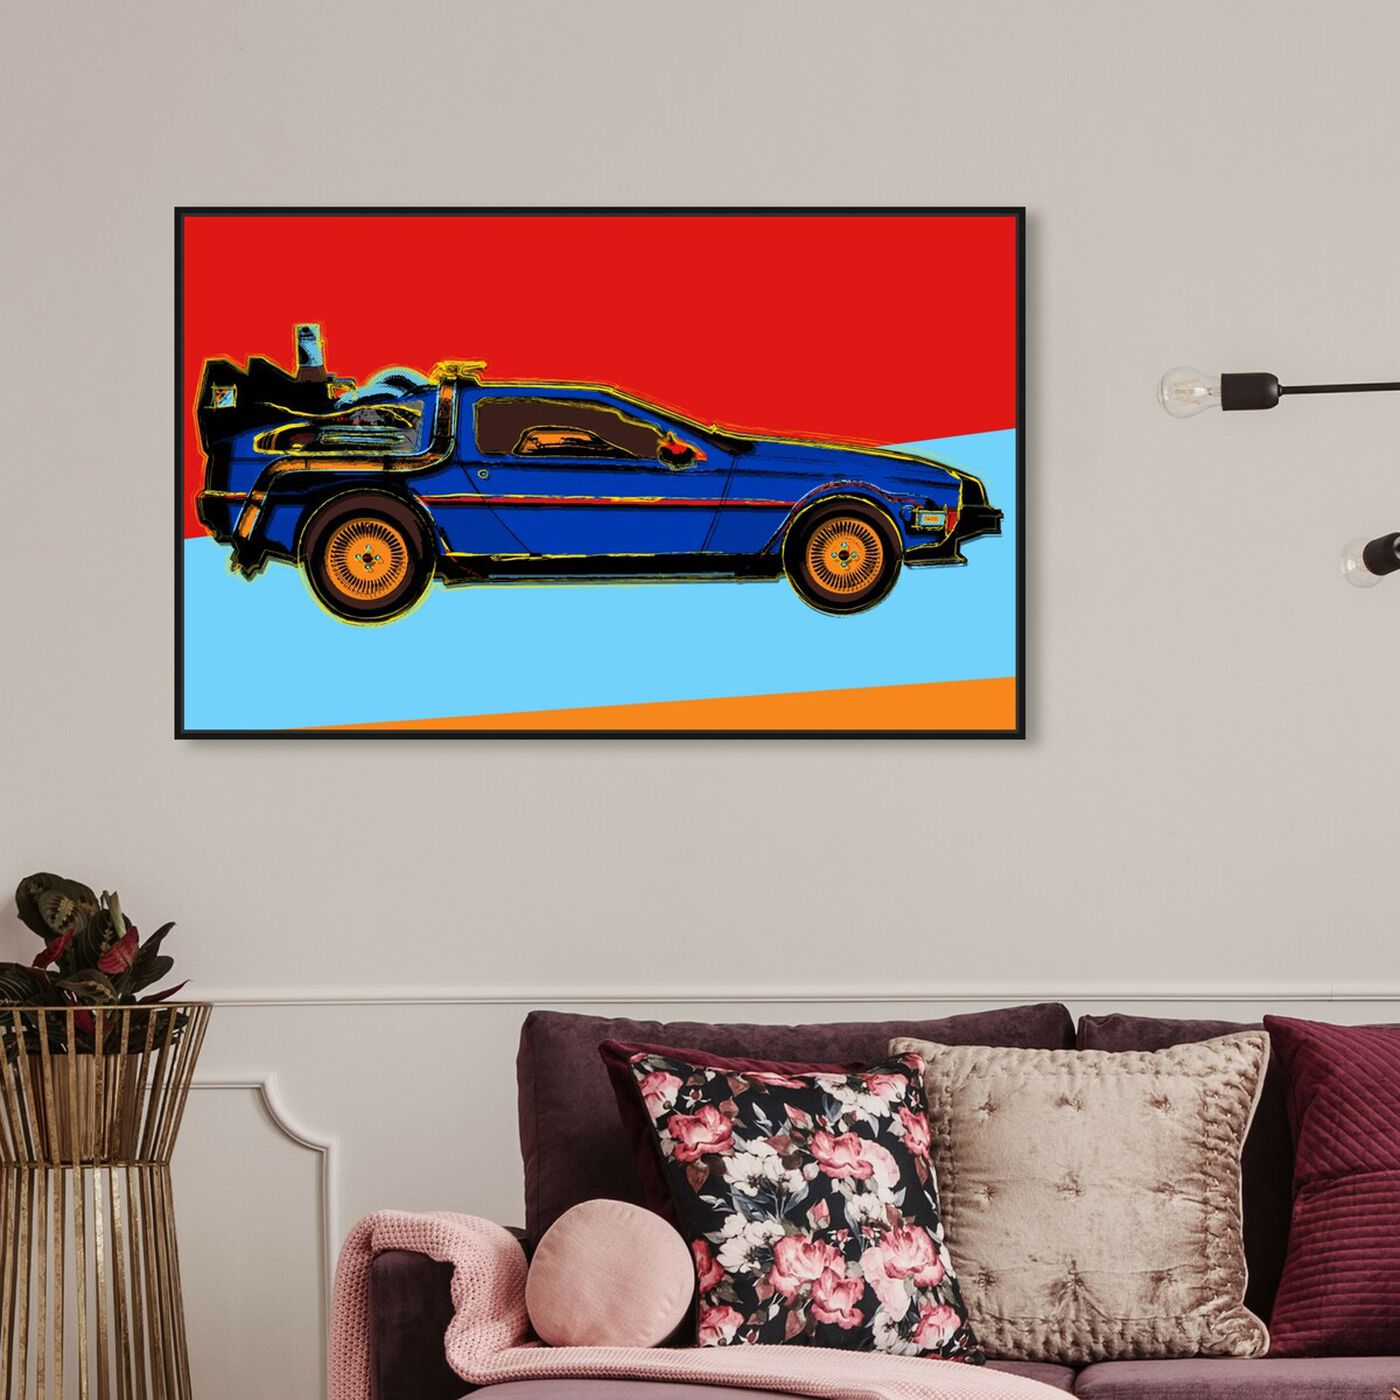 Hanging view of Warhol style Delorean featuring transportation and automobiles art.